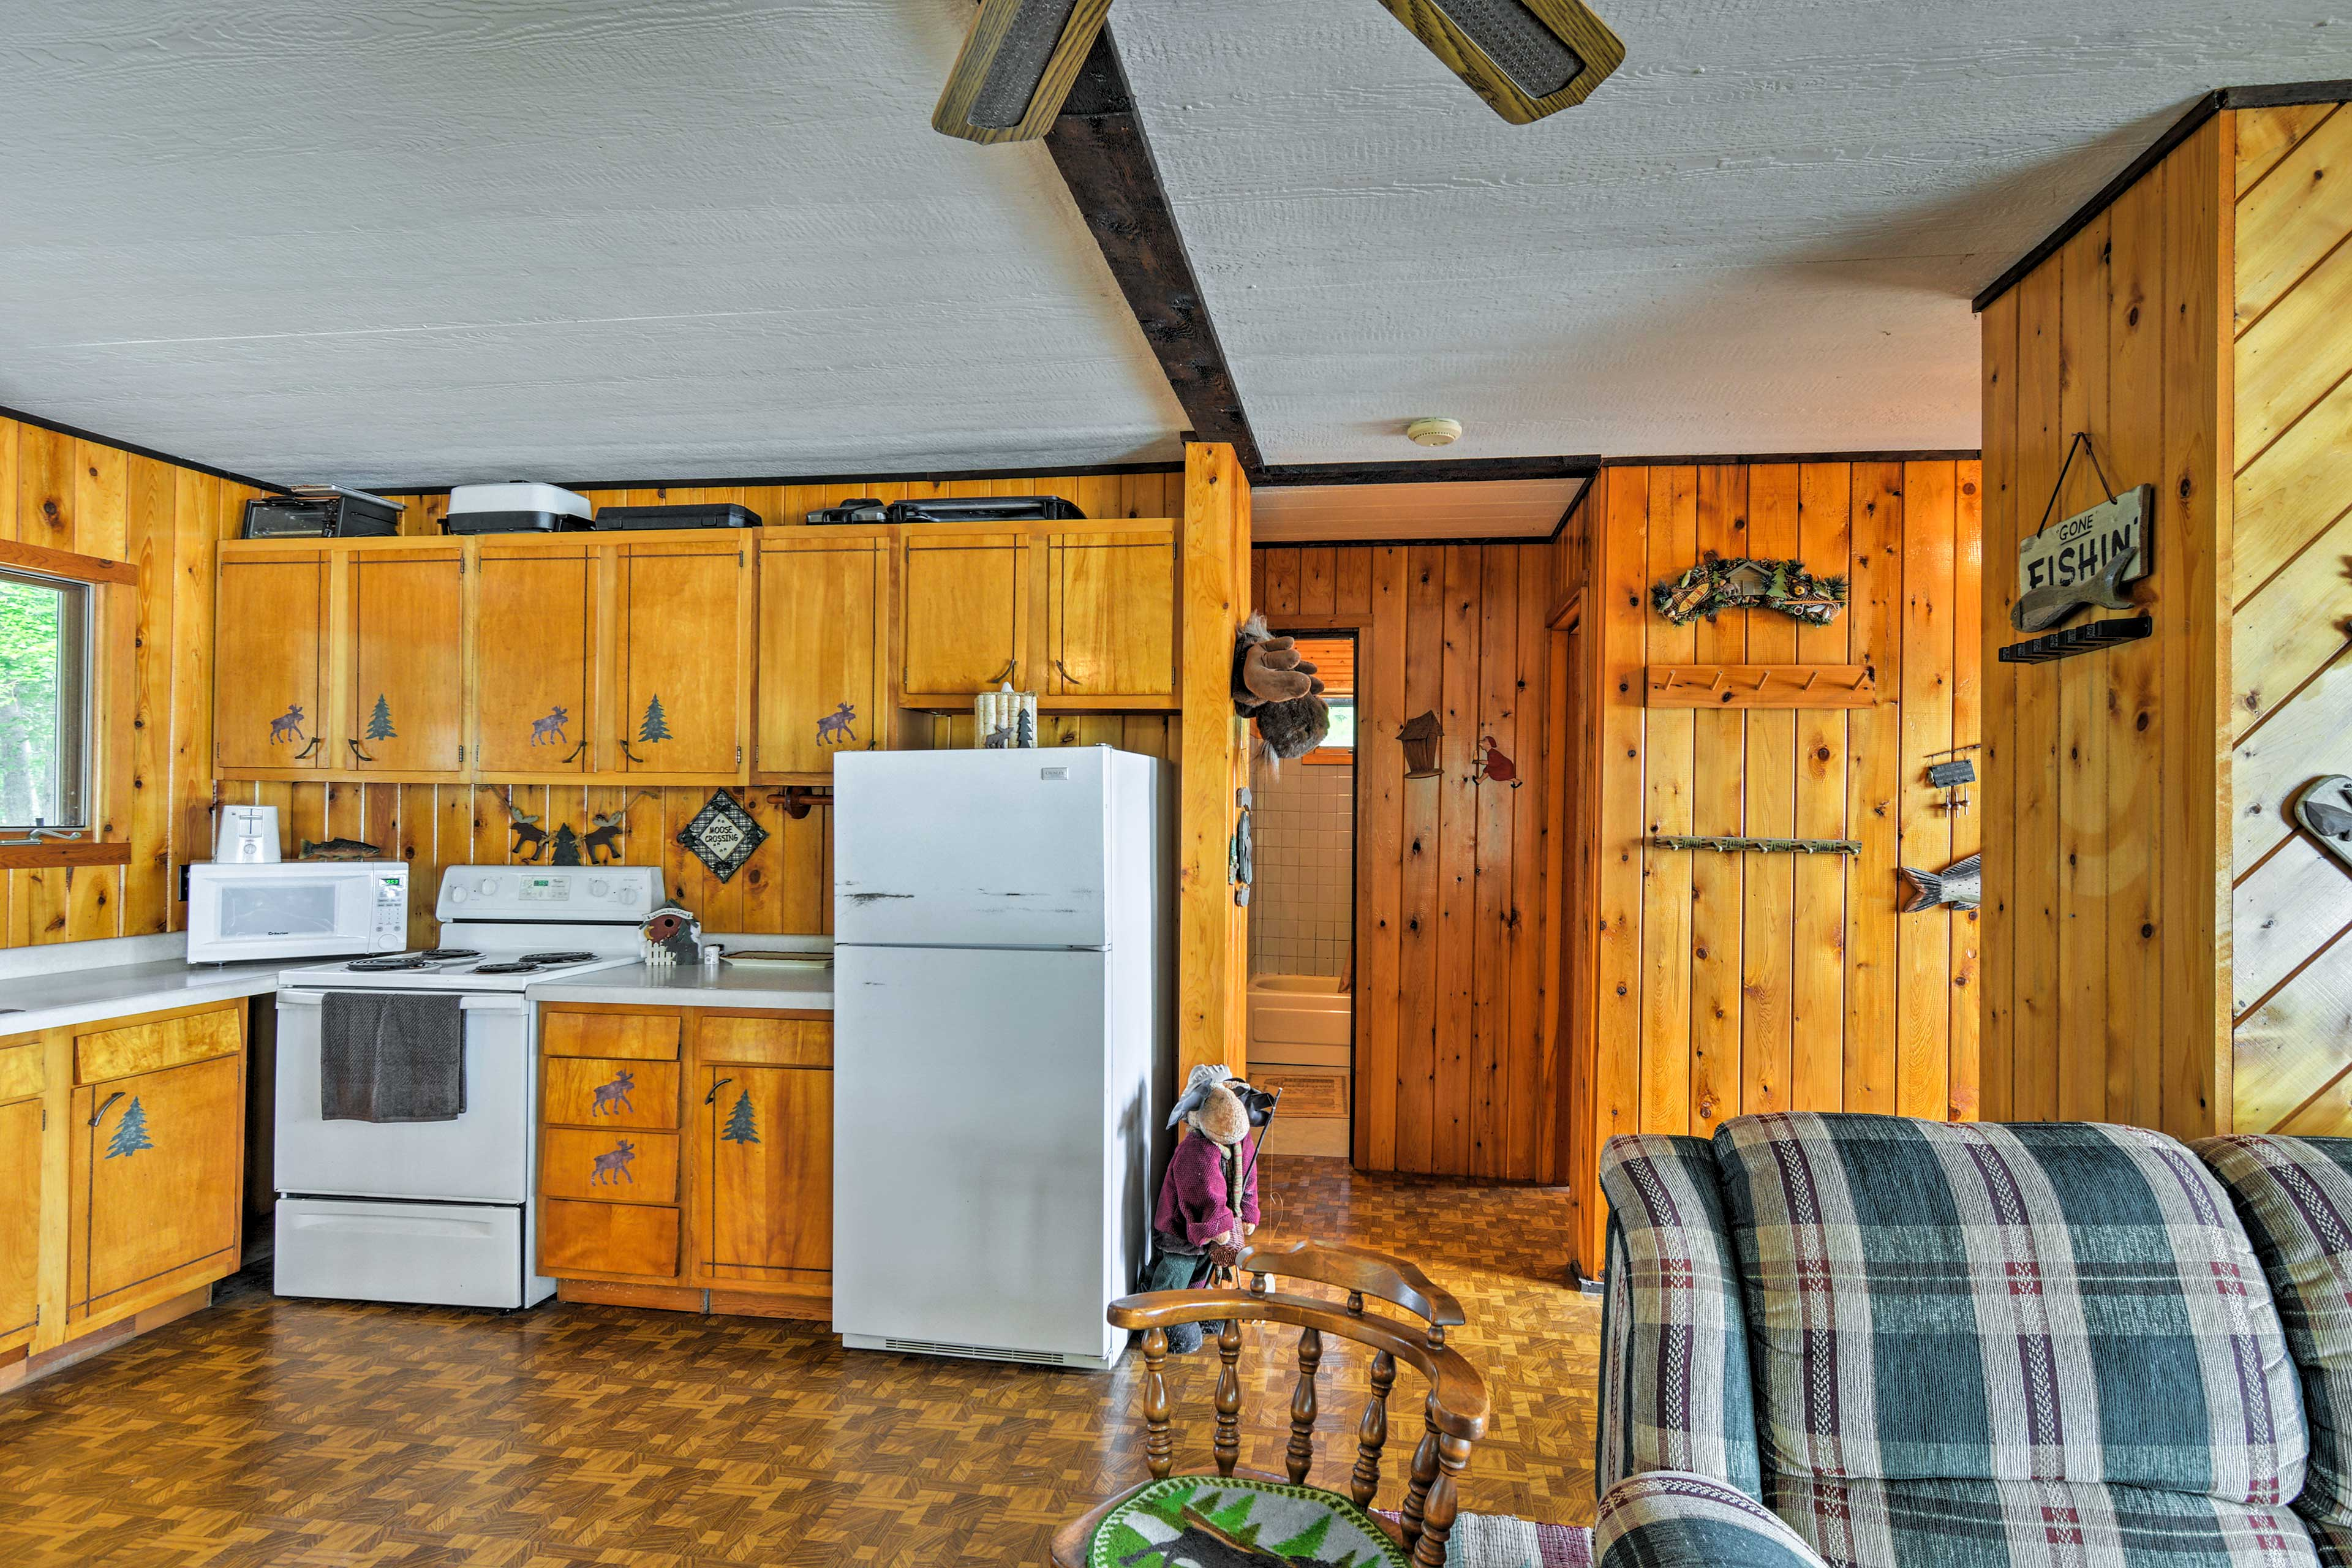 The well-equipped kitchen holds everything you may need for home-cooked meals.